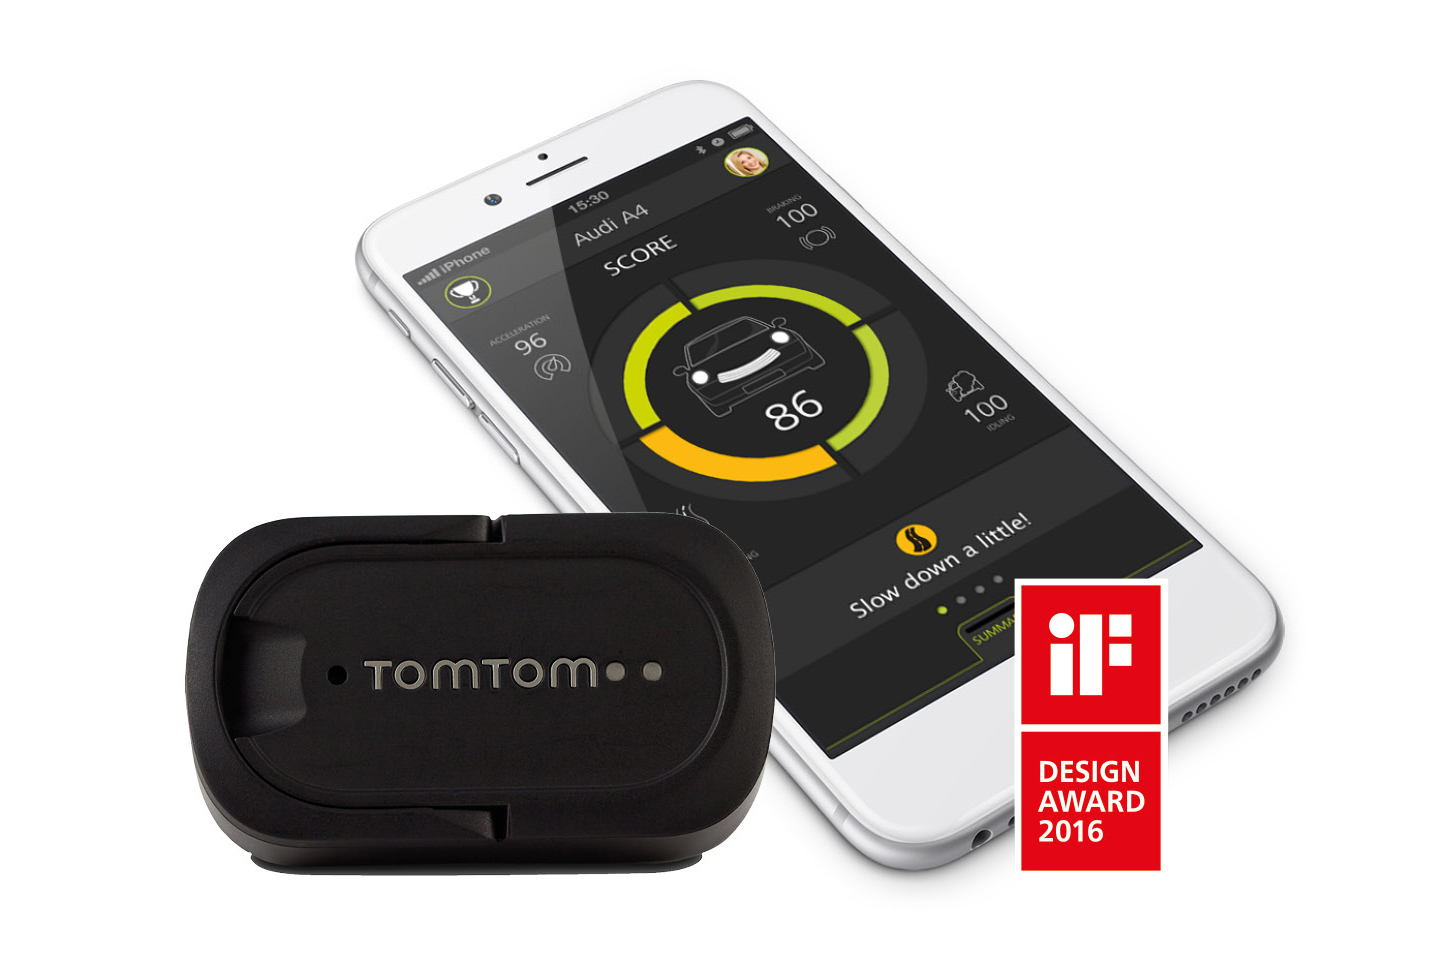 IFA, Berlin, Germany, 1 September 2016 TomTom today announces the consumer  launch of its TomTom CURFER performance tracker for cars.